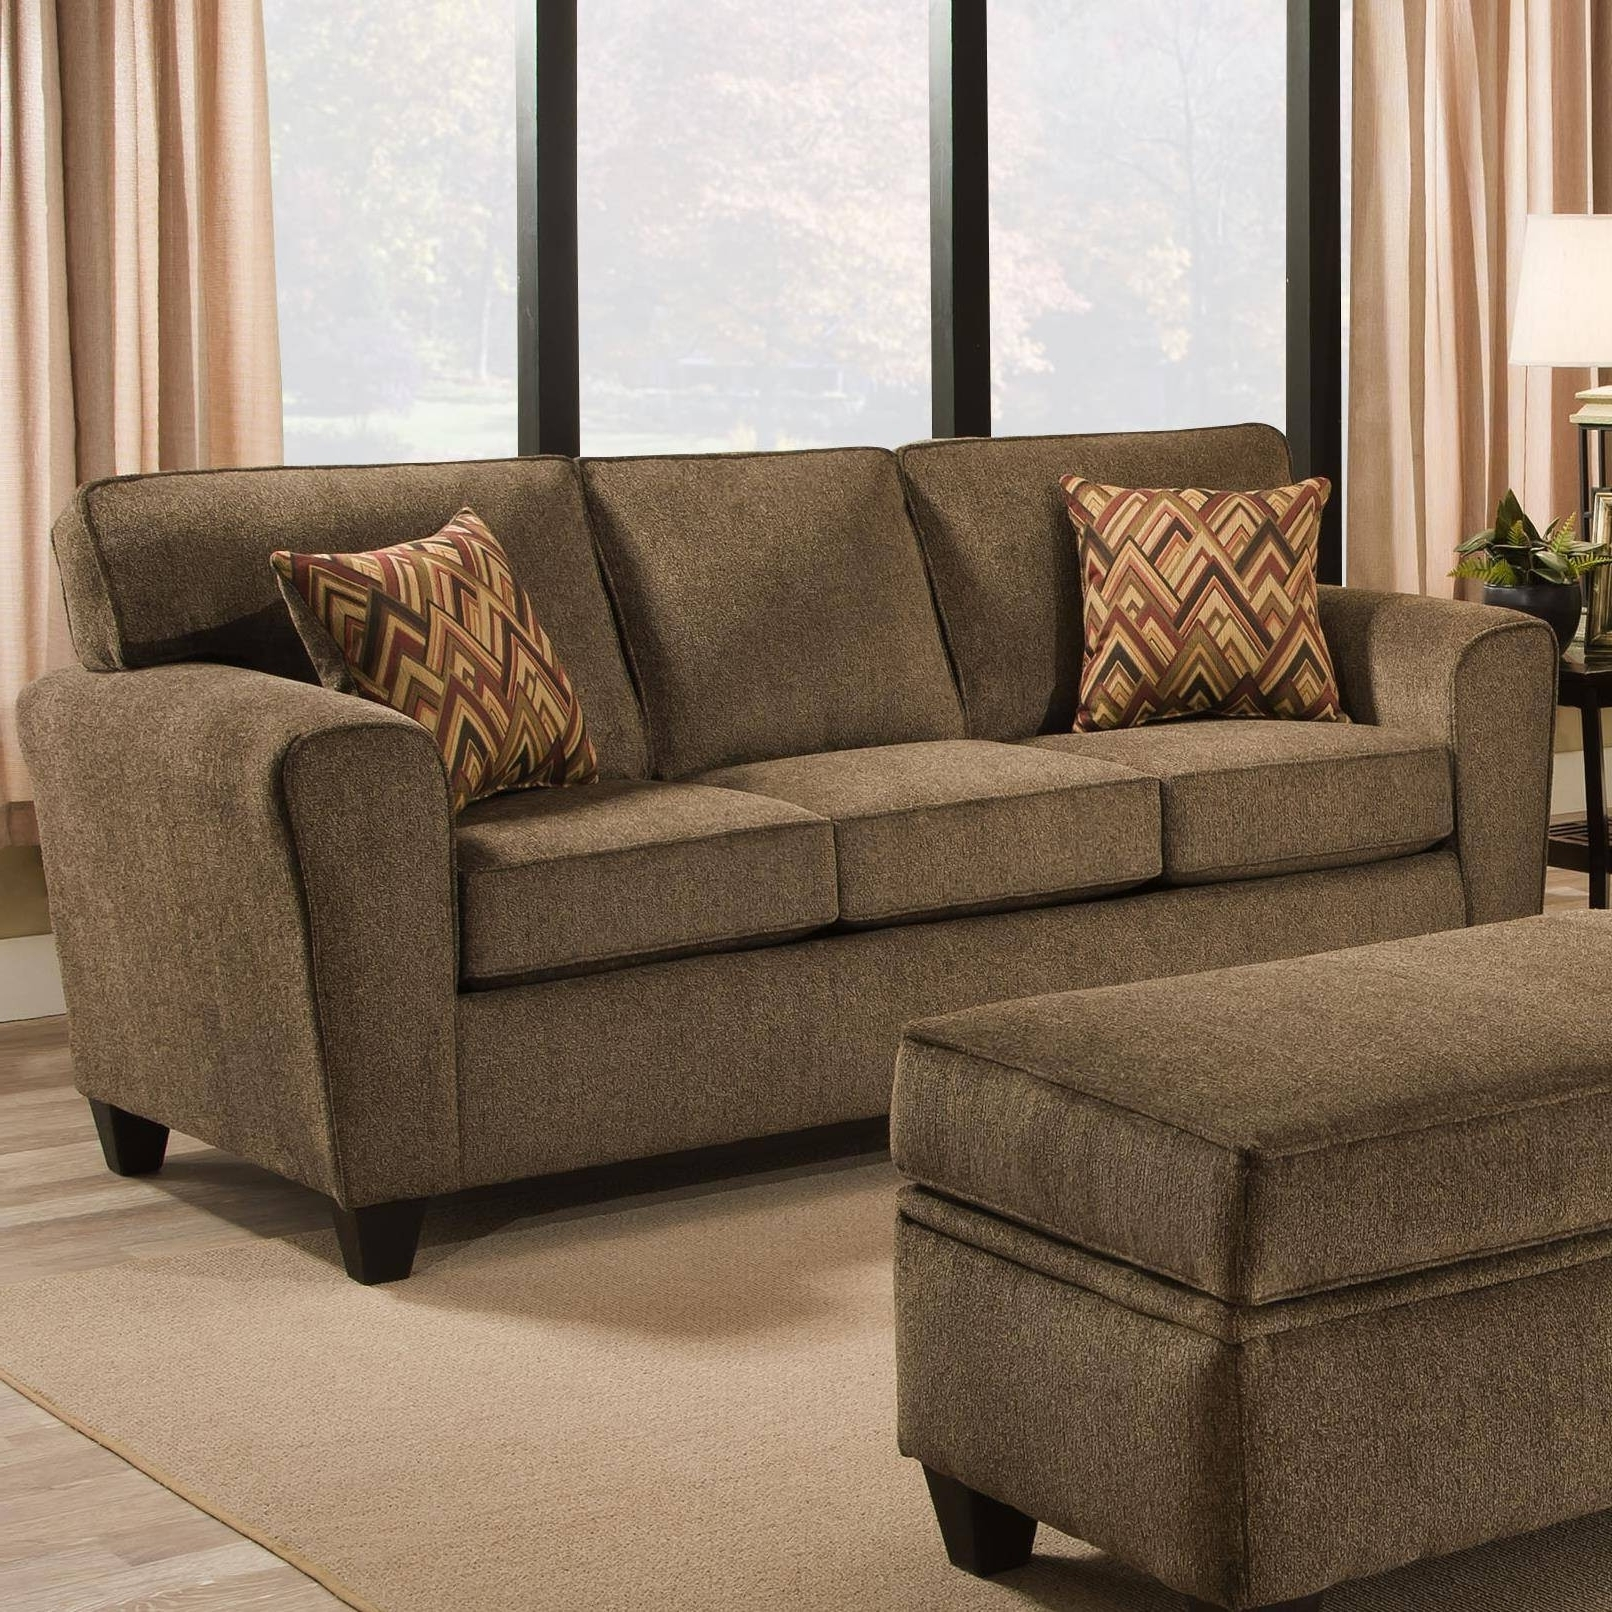 Current Furniture : Ethan Allen Down Filled Sofa Lovely Lynn Sofa Awesome Pertaining To Duluth Mn Sectional Sofas (View 12 of 20)